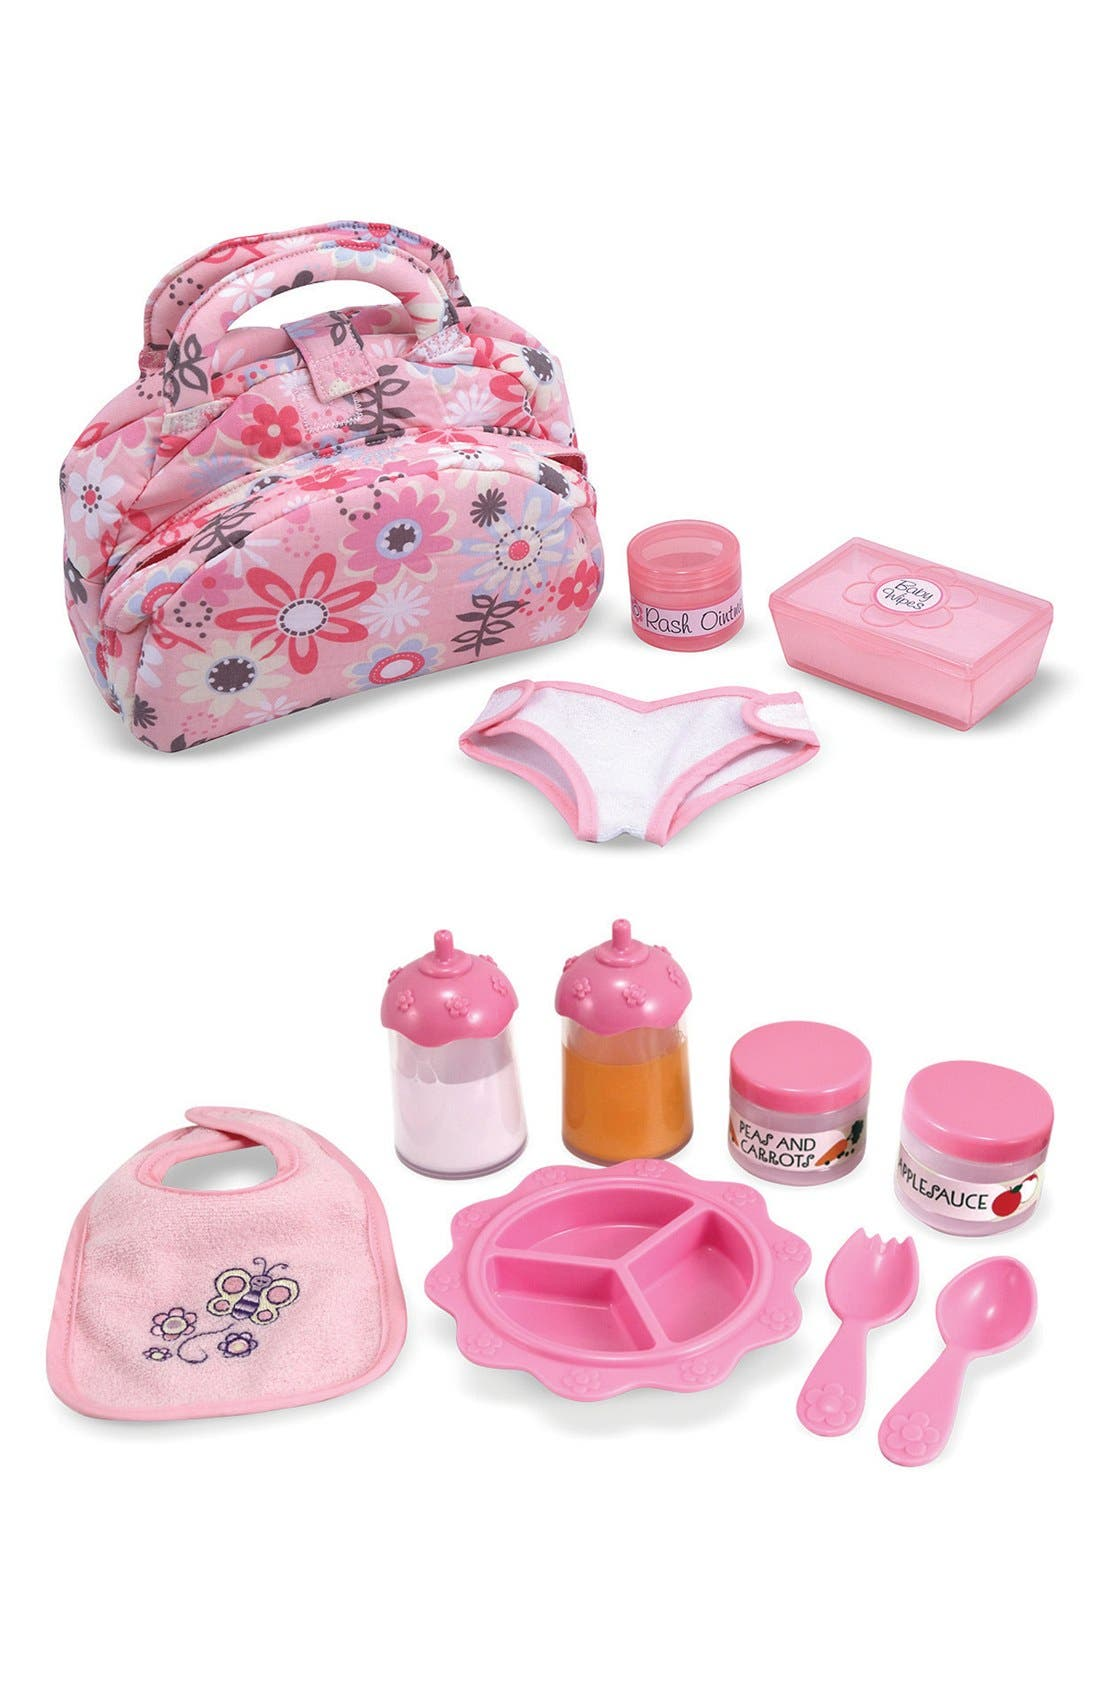 Melissa & Doug Baby Doll Accessories Set